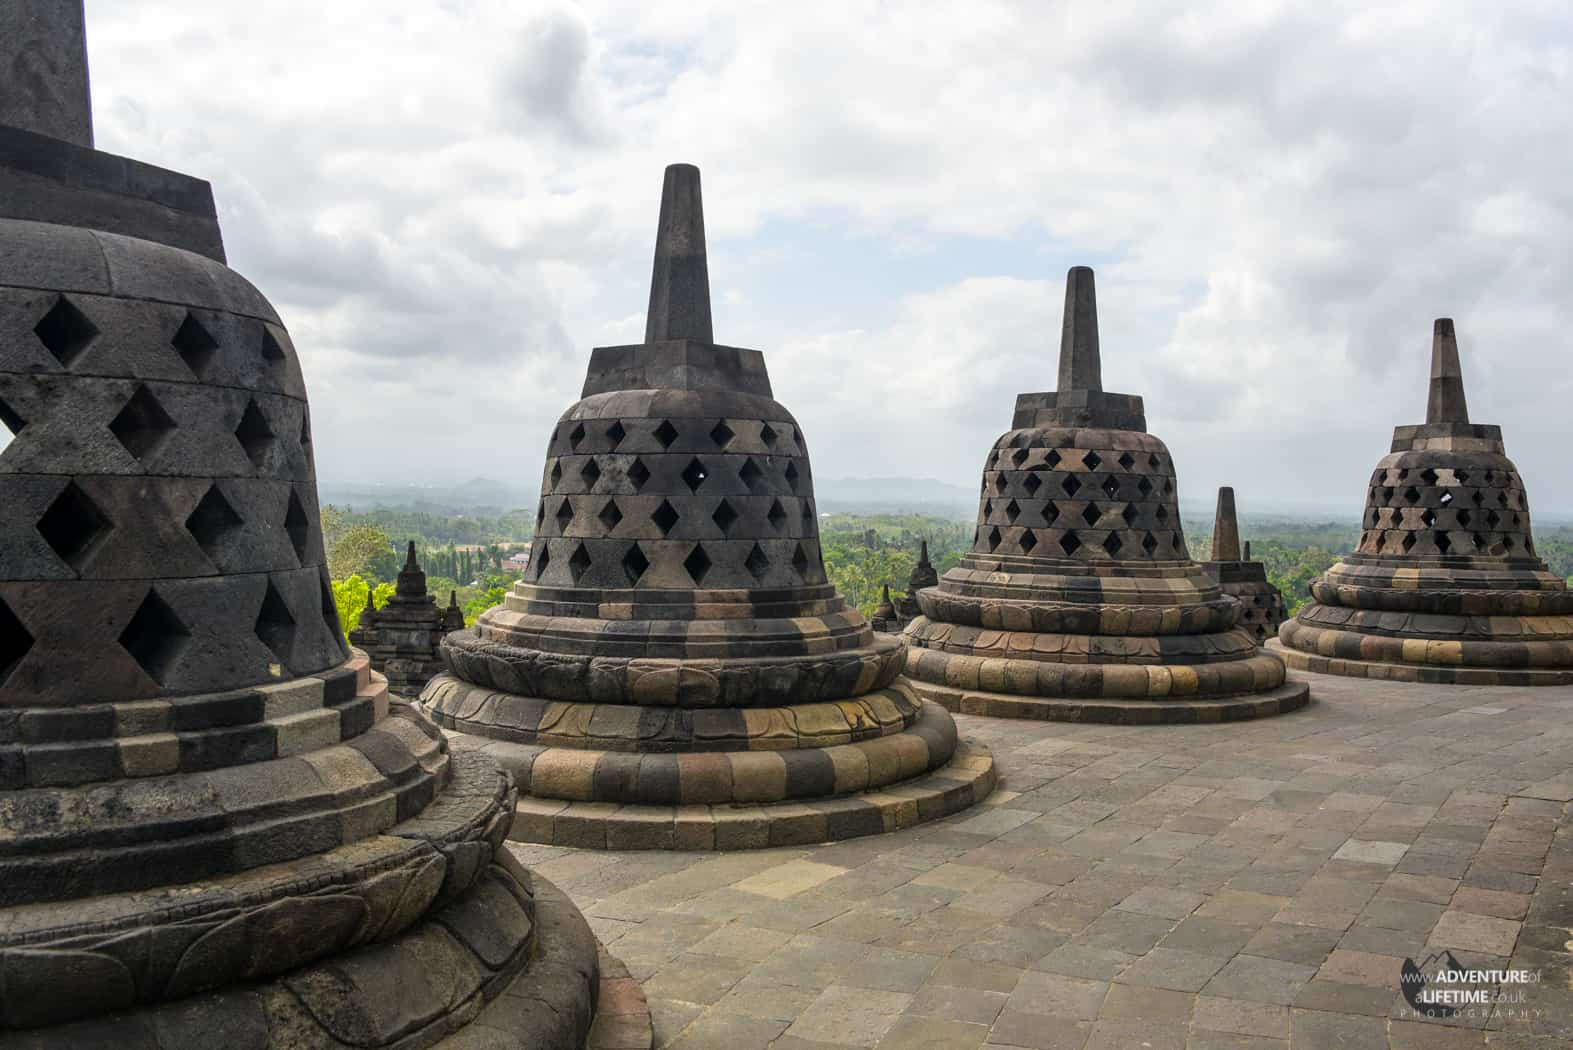 The stupas of Borobudur temple, Java